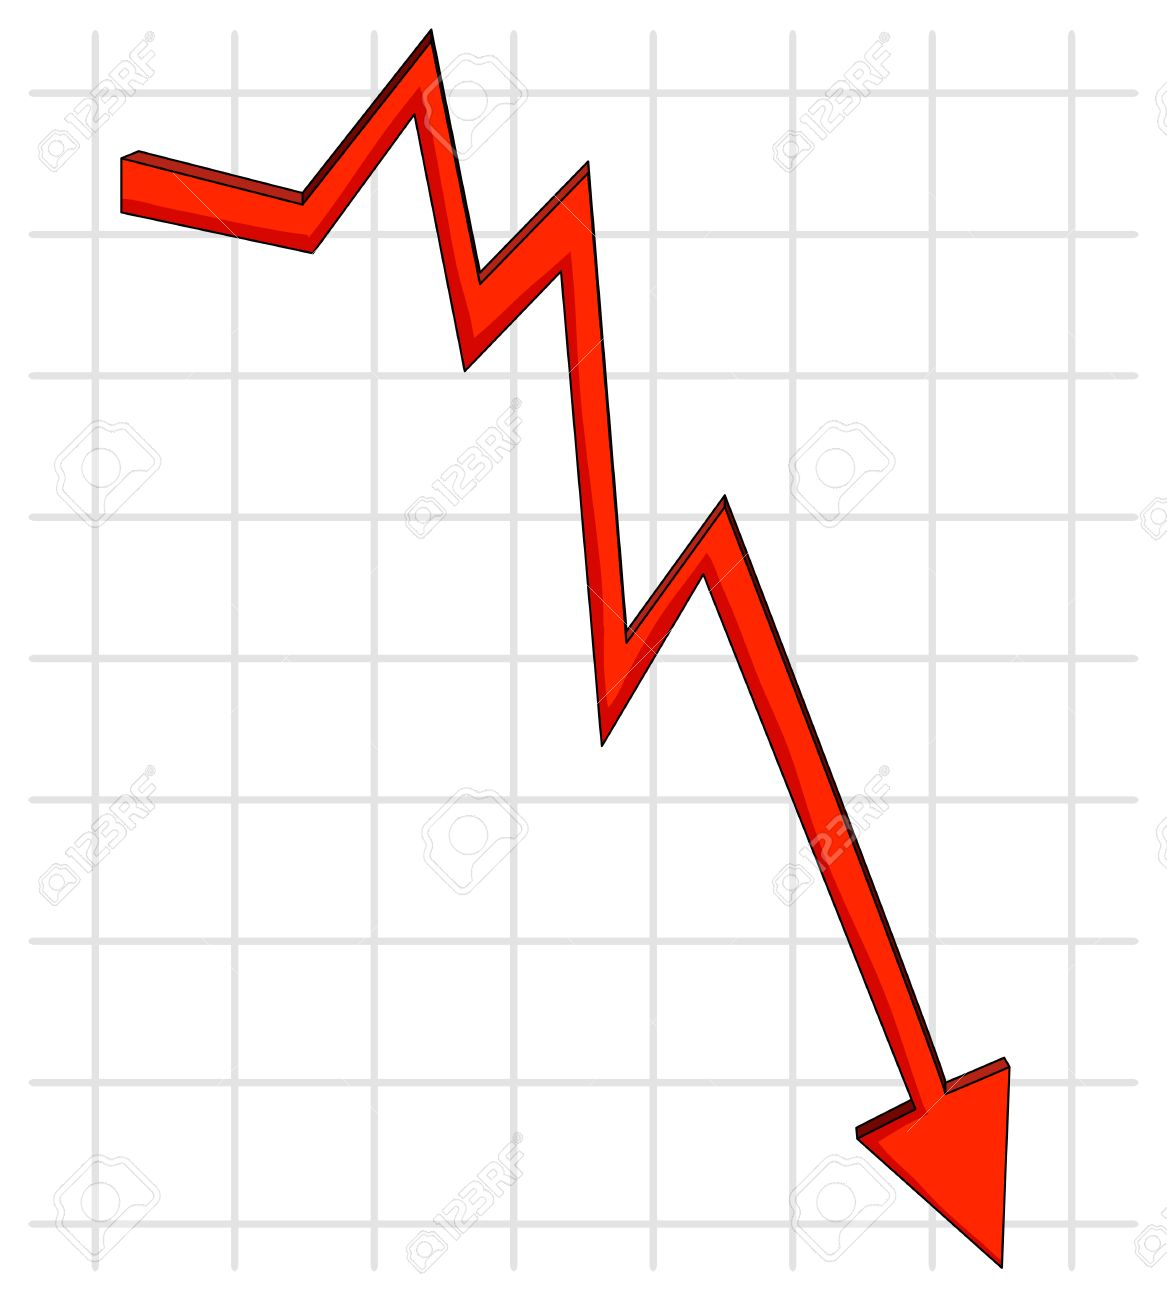 red line graph with downturn arrow royalty free cliparts, vectors